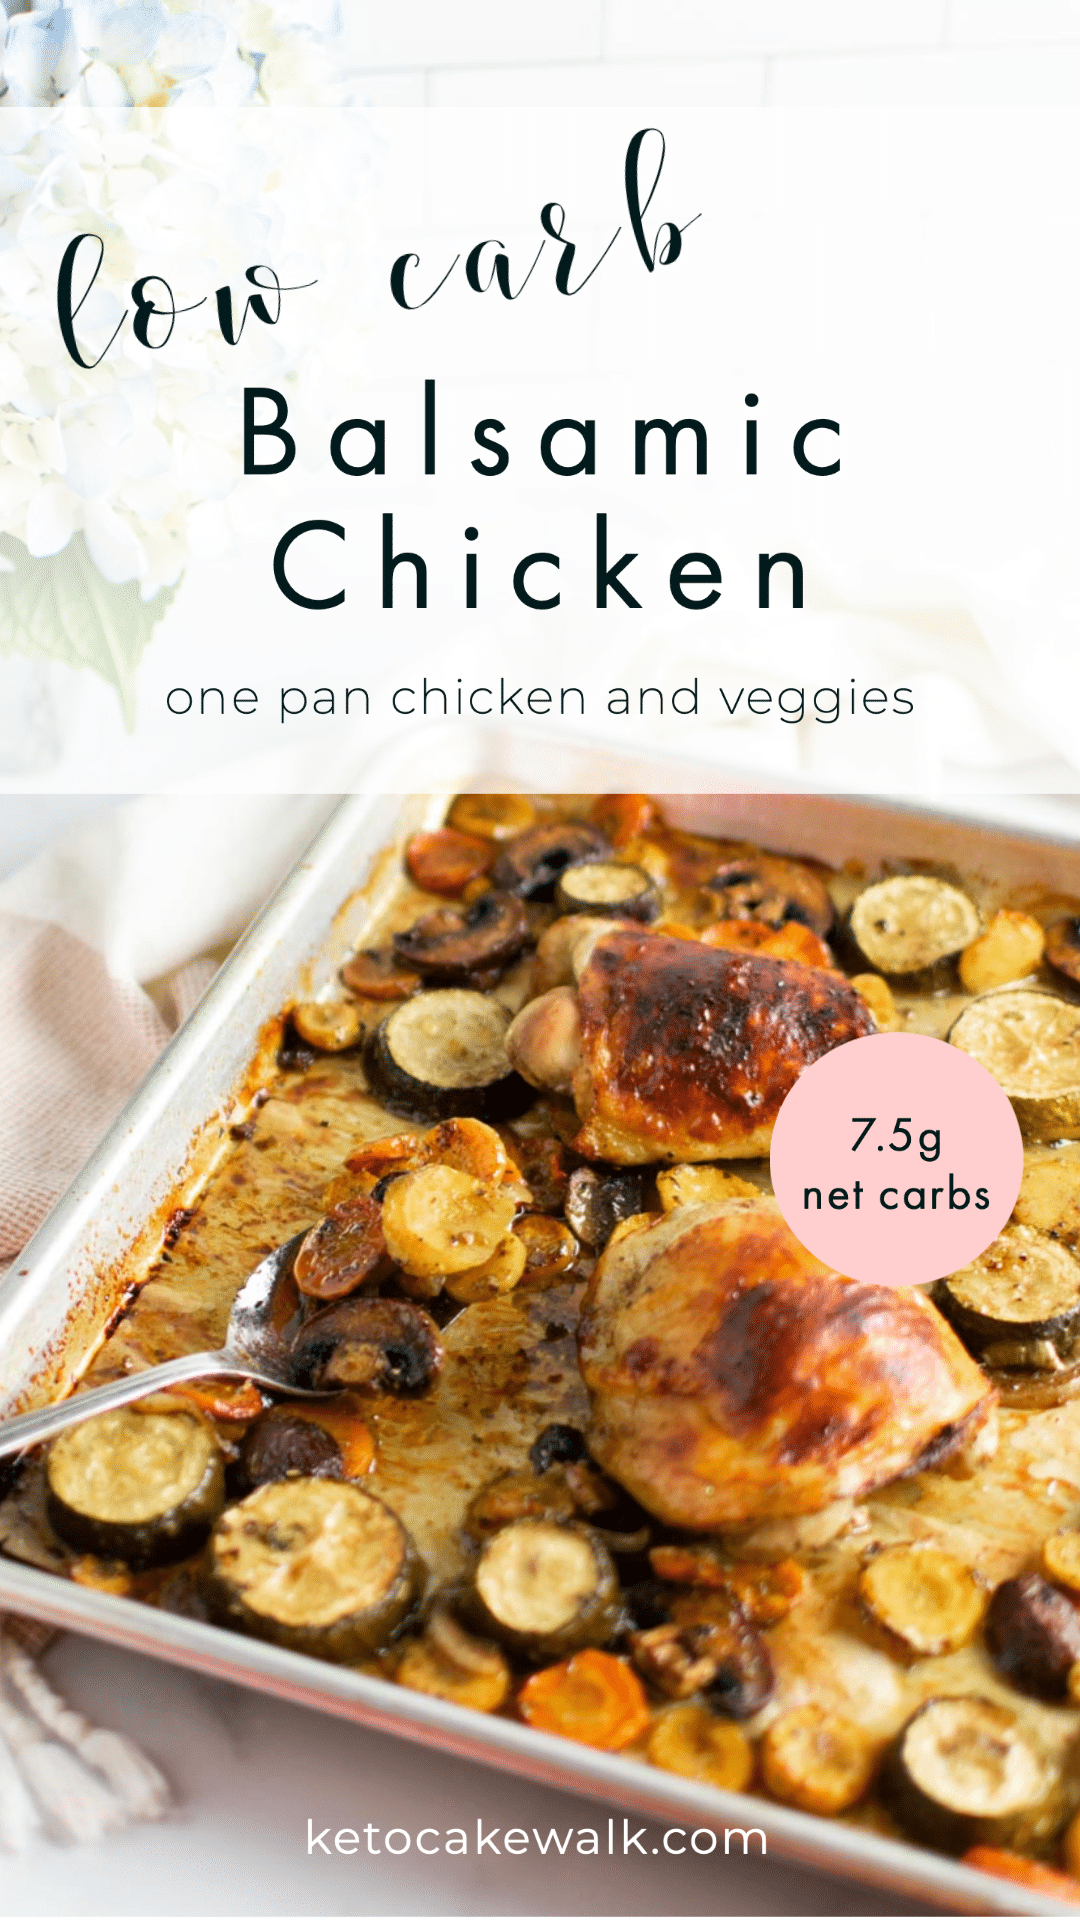 Sheet Pan dinners are my favorite because they're SO EASY to make. This Balsamic Chicken with veggies tastes like you worked on it all day! A great low carb dinner option! #lowcarb #keto #paleo #whole30 #sheetpan #easy #dinner #weeknight #glutenfree #grainfree #chicken #balsamic